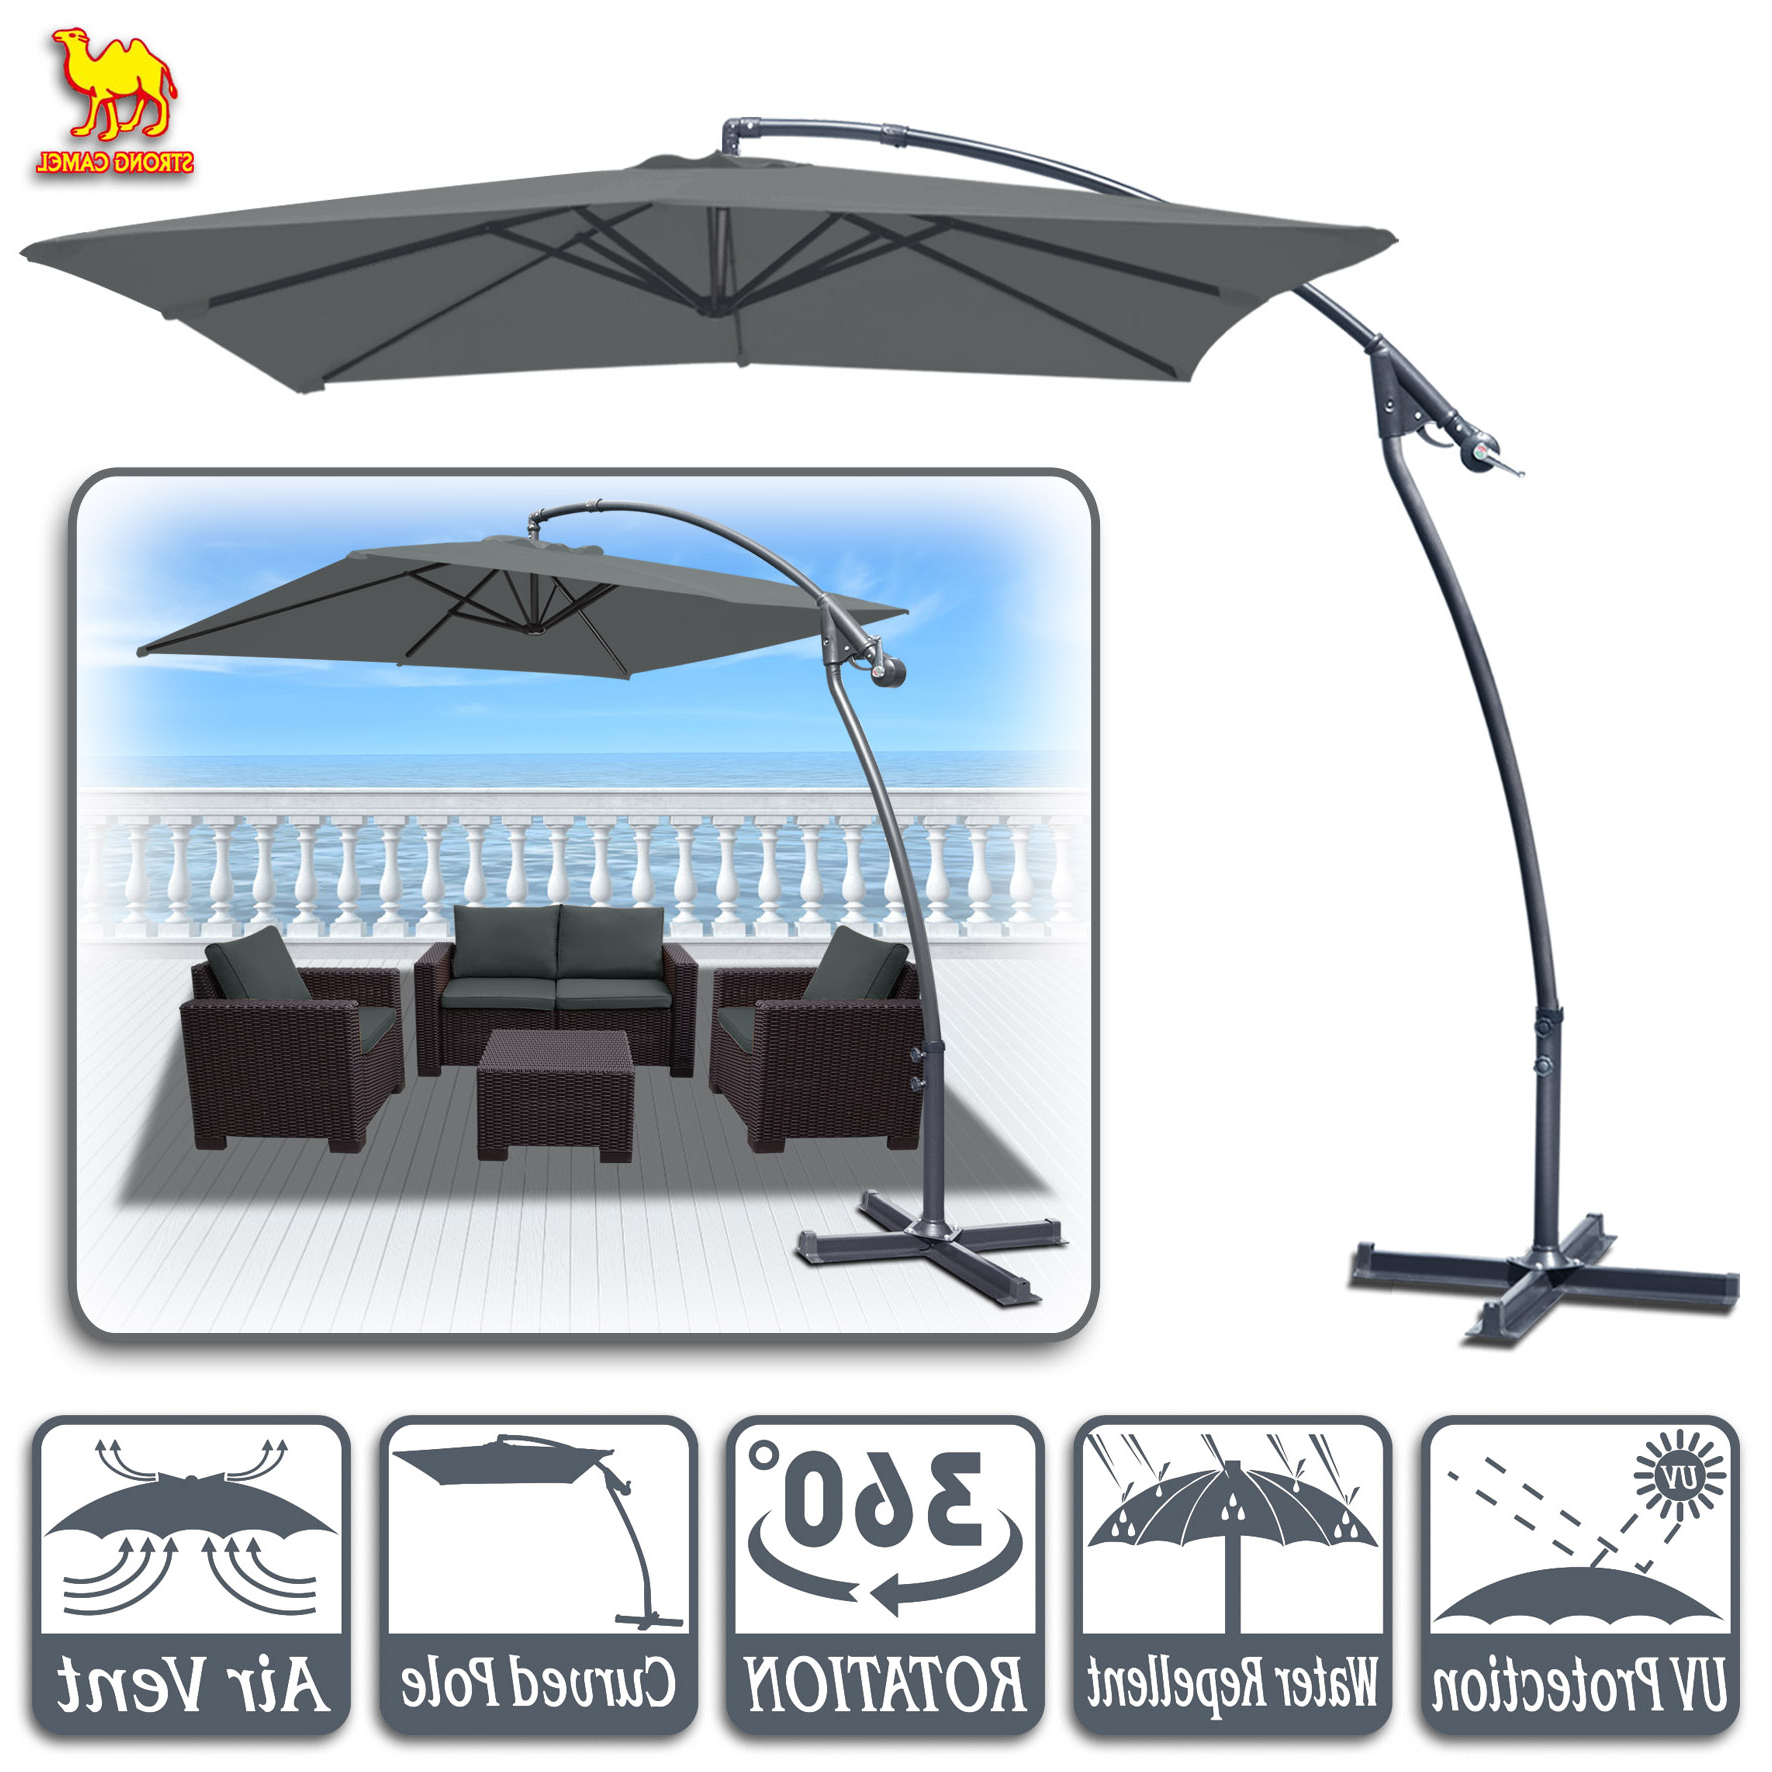 Newest Justis Cantilever Umbrellas Inside Strong Camel 8' X 8' Cantilever Hanging Umbrella Offset Patio Umbrella Garden Outdoor Sunshade Market 360 Degree Rotational Function In Grey Color (View 5 of 20)